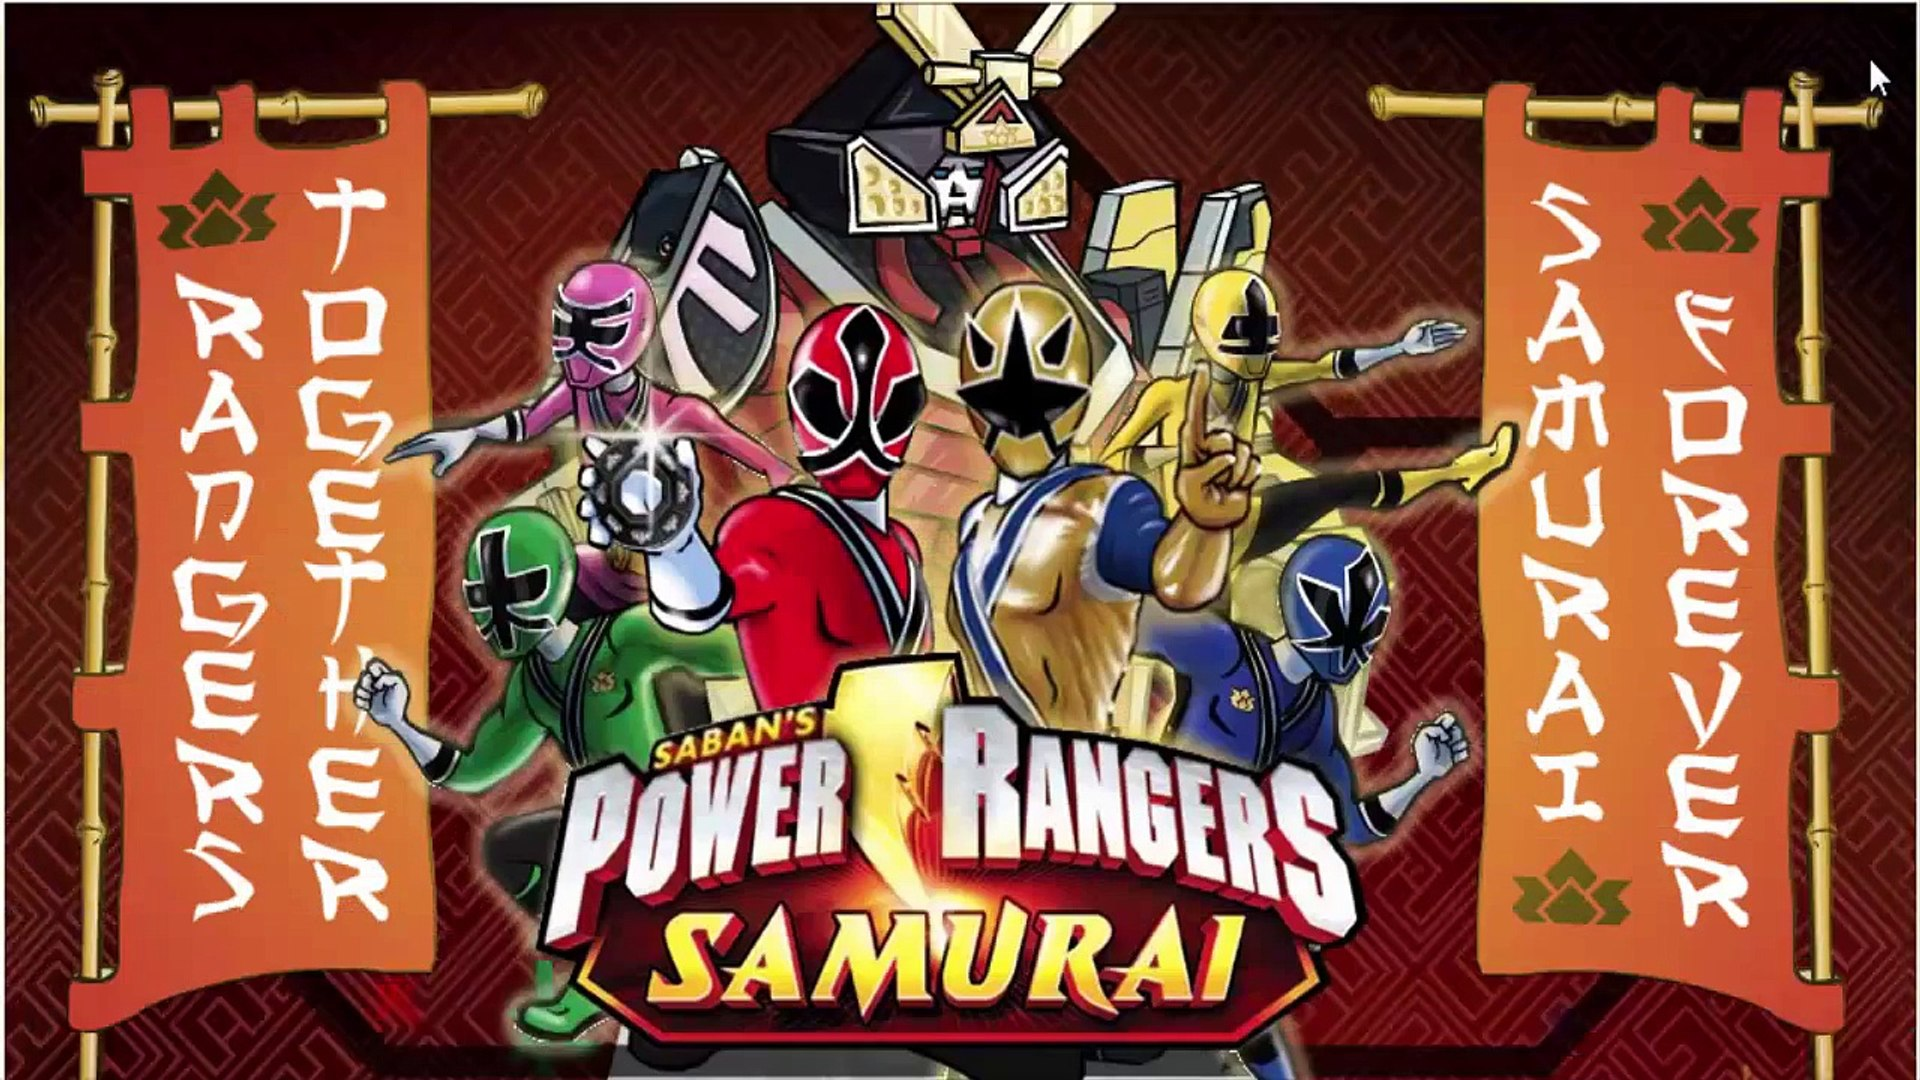 Power Rangers Samurai Game - New Power Rangers 2014